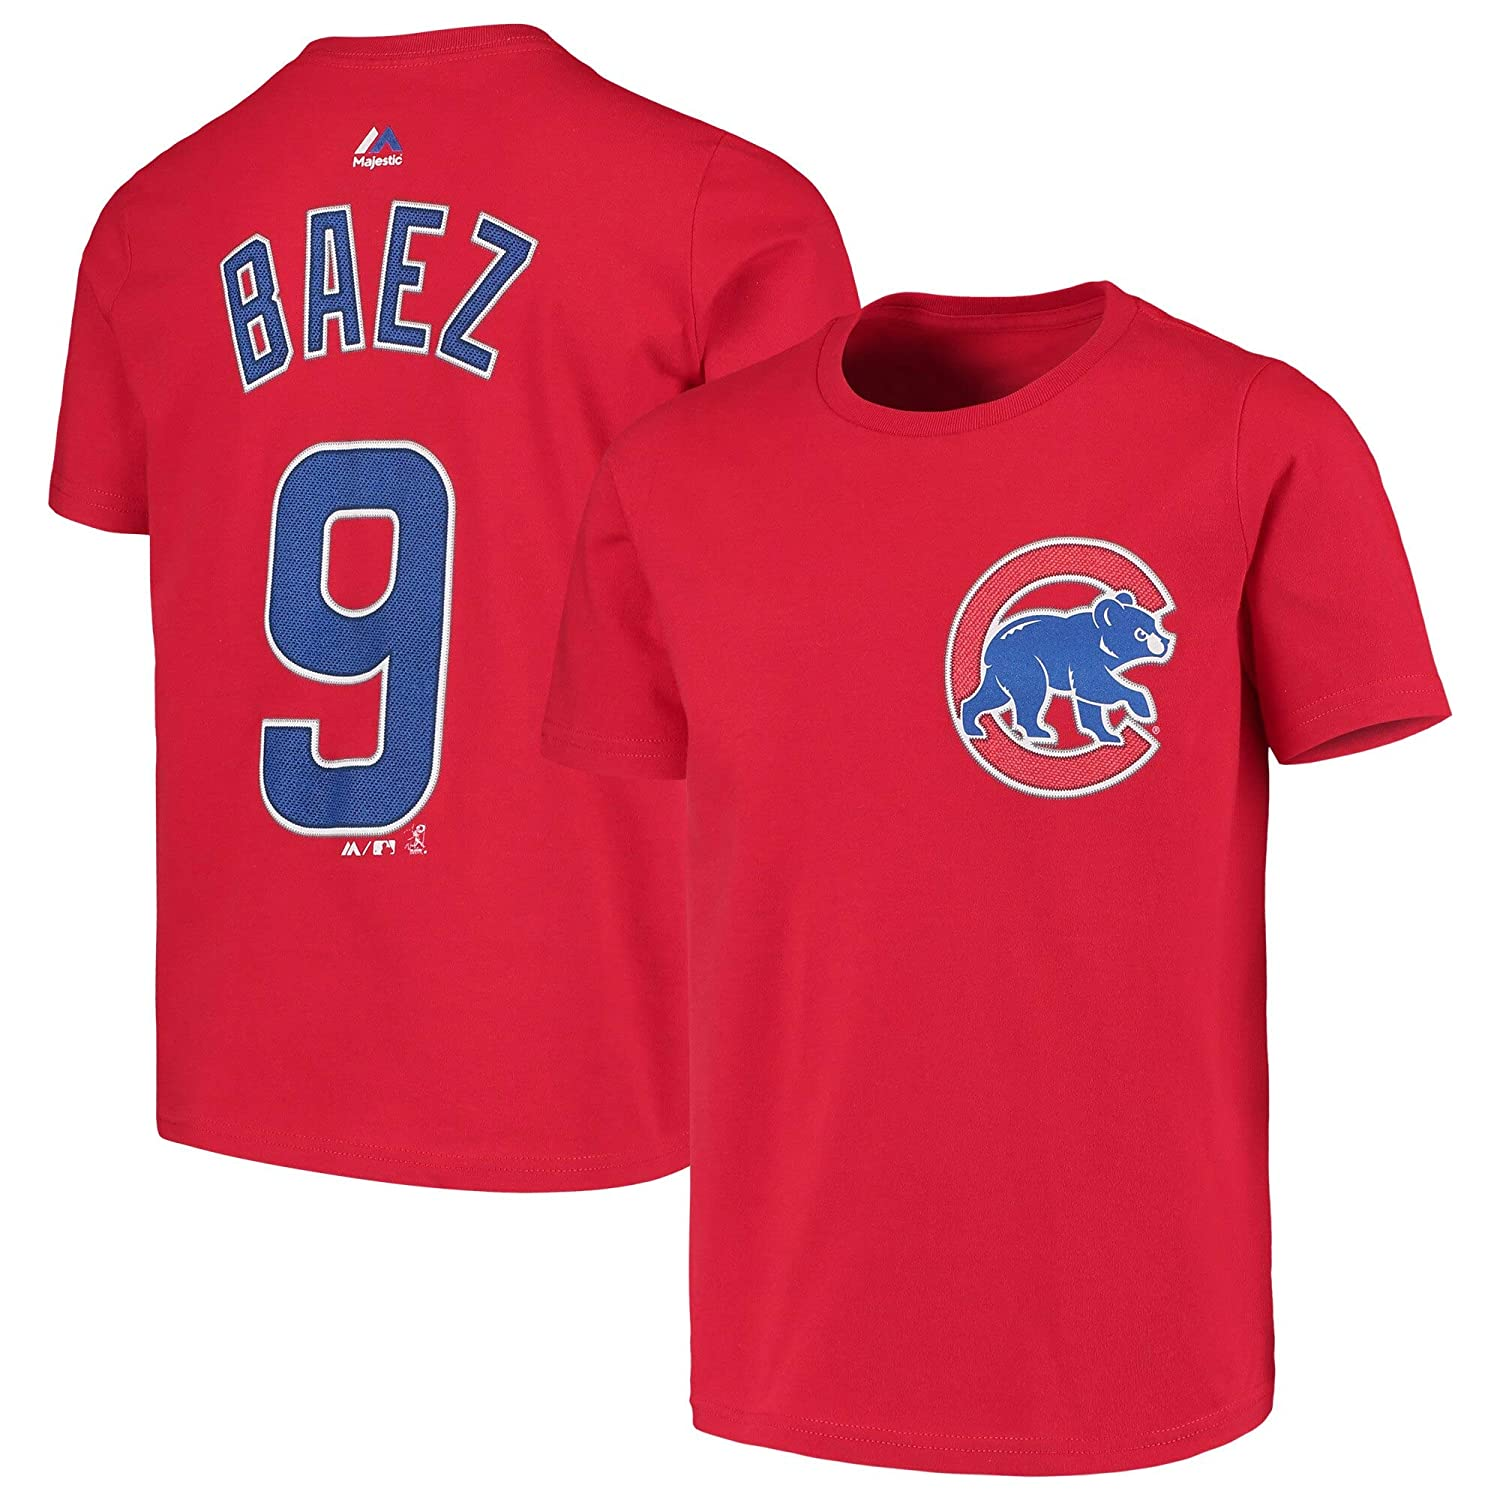 new styles 3f0c2 6edf6 Amazon.com : Outerstuff Javier Baez Chicago Cubs #9 Youth ...